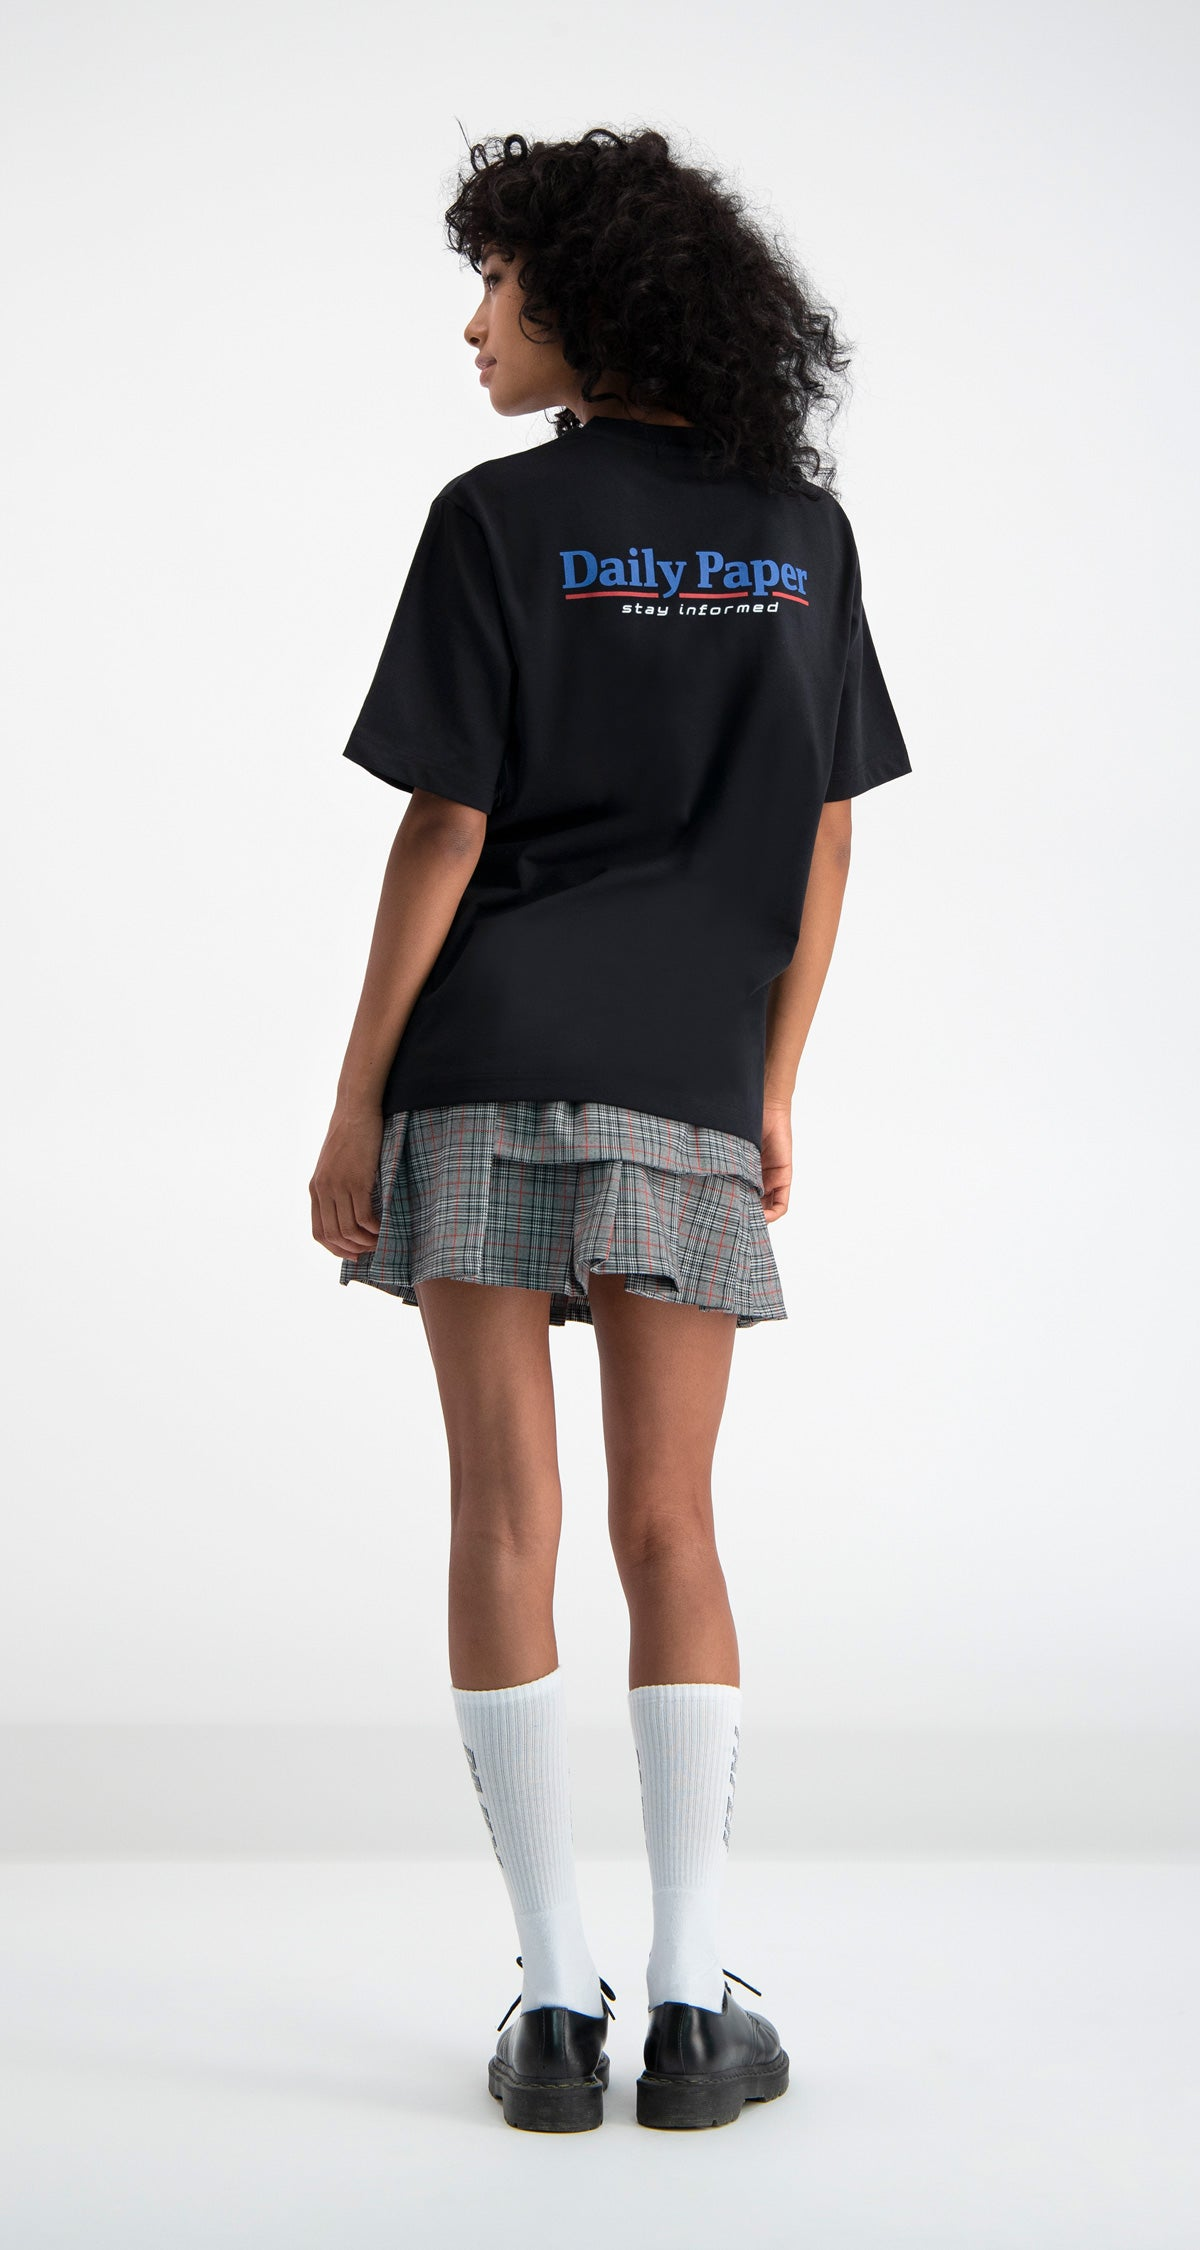 Daily Paper - Black Donnie T-shirt